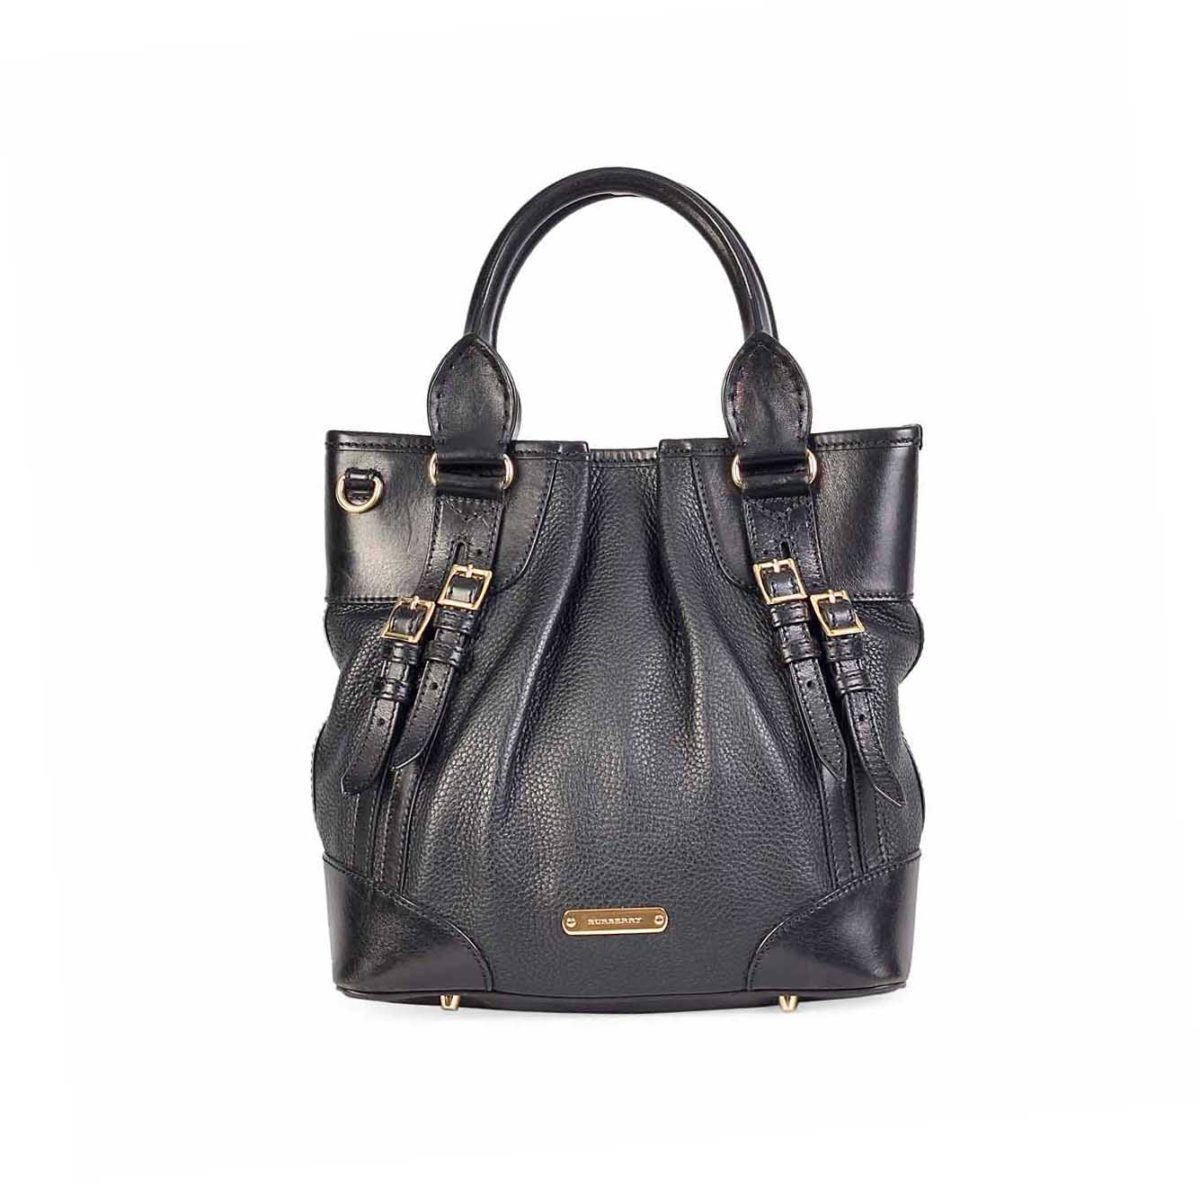 81d9b7277725 BURBERRY Grained Leather Bucket bag